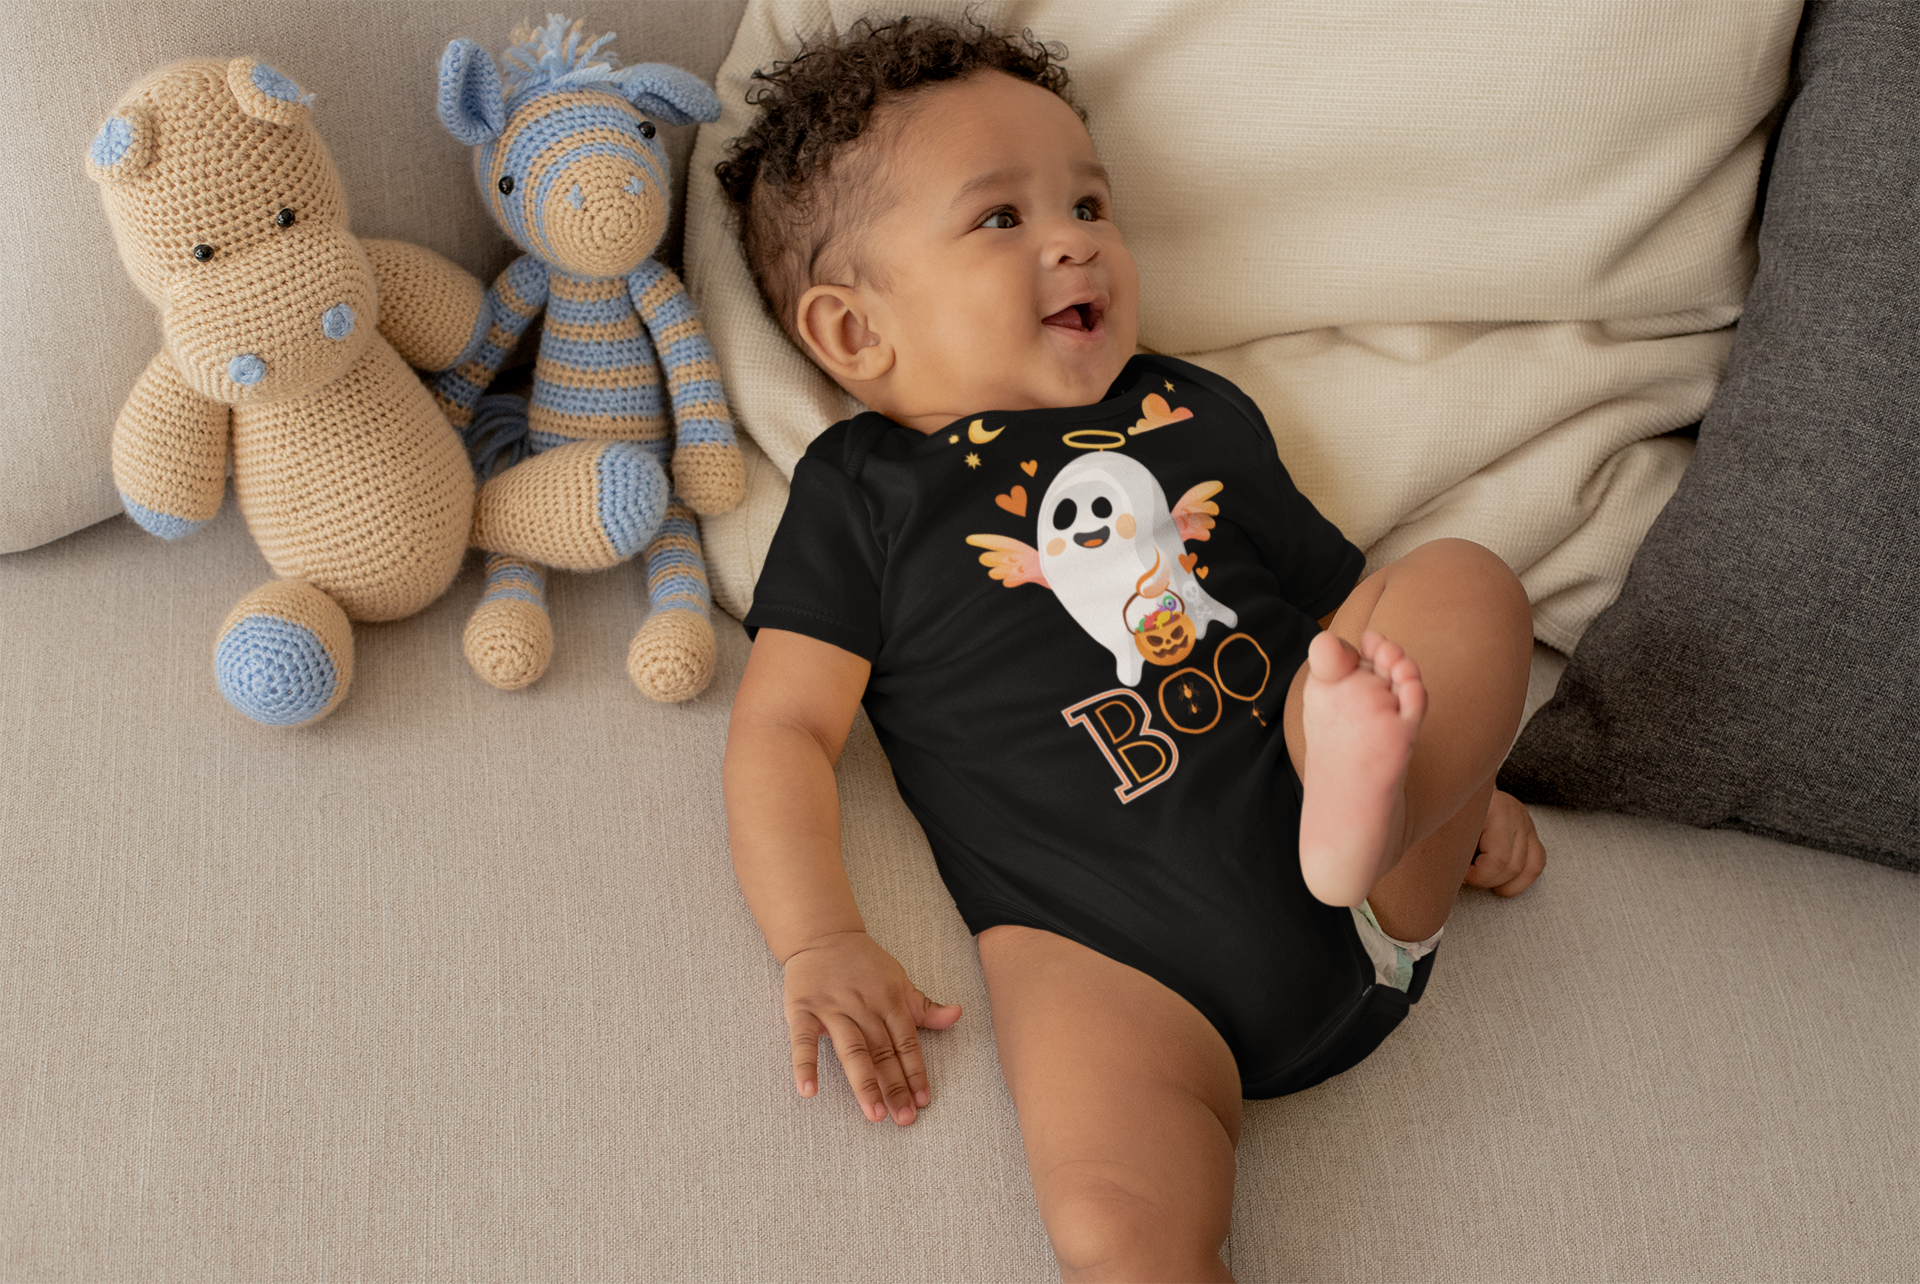 Limited Edition Boo Onesie - Black Love Boutique